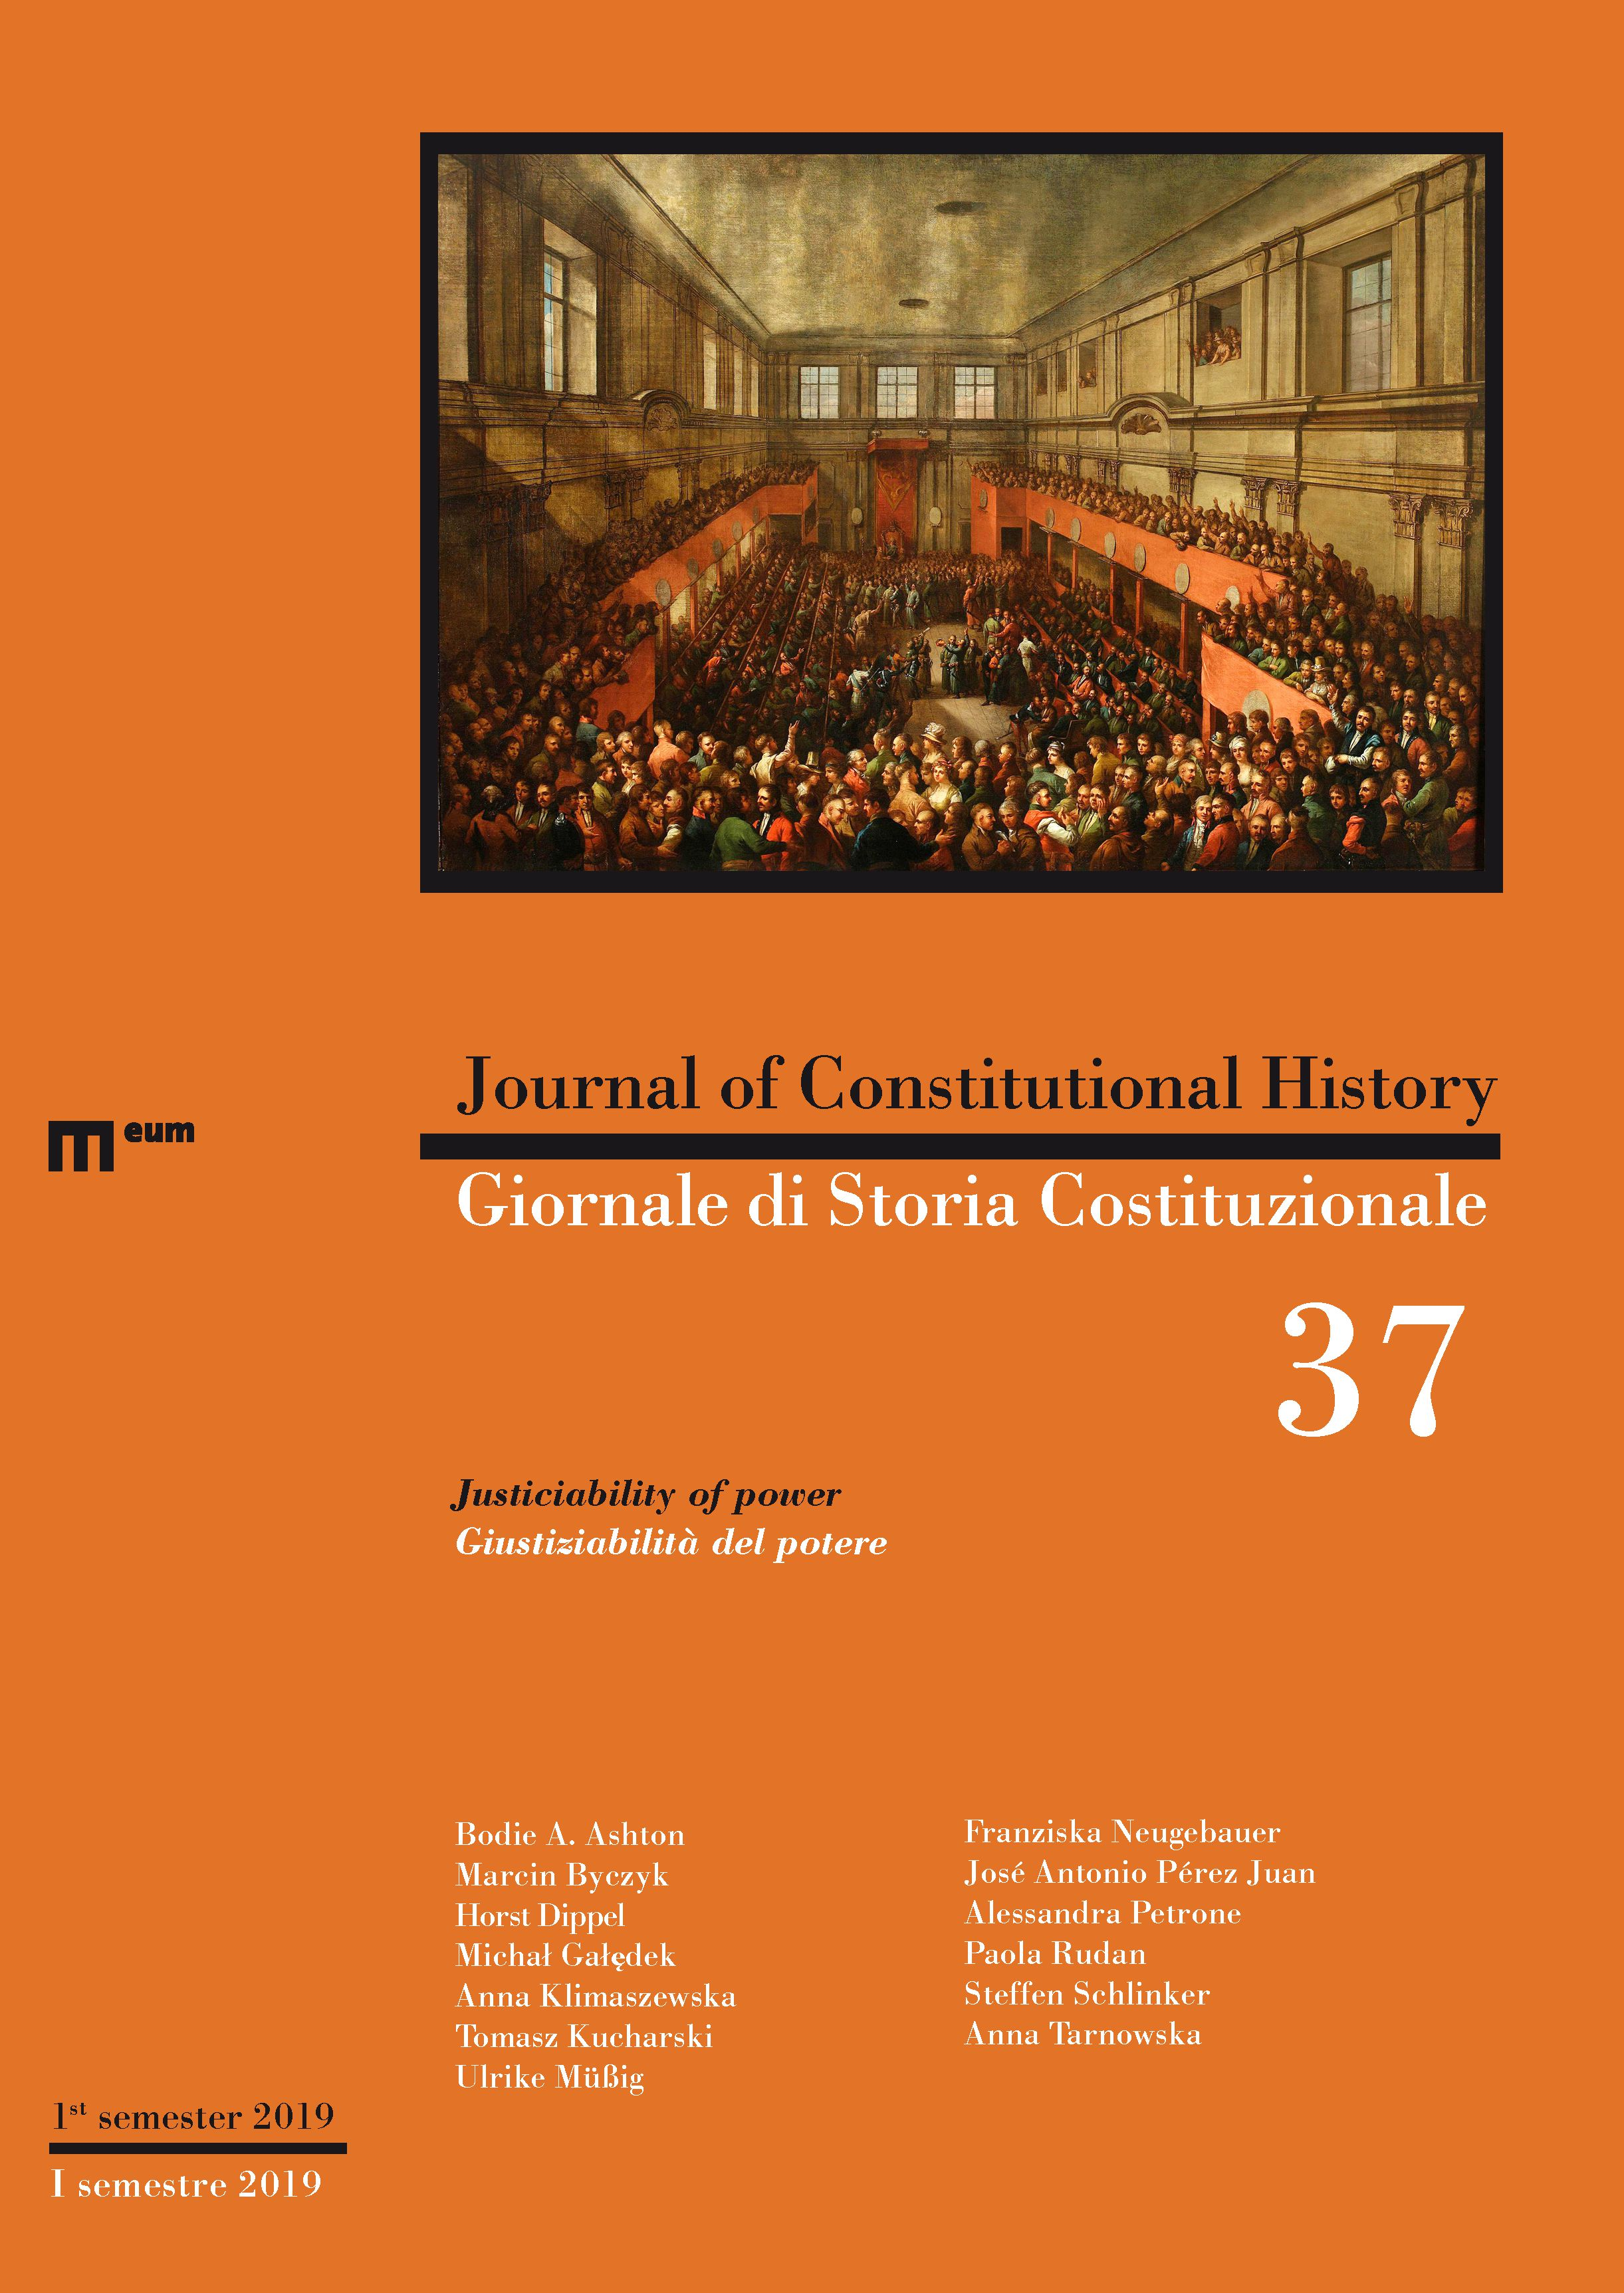 Journal of Constitutional History / Giornale di Storia Costituzionale n. 37, 1/2019